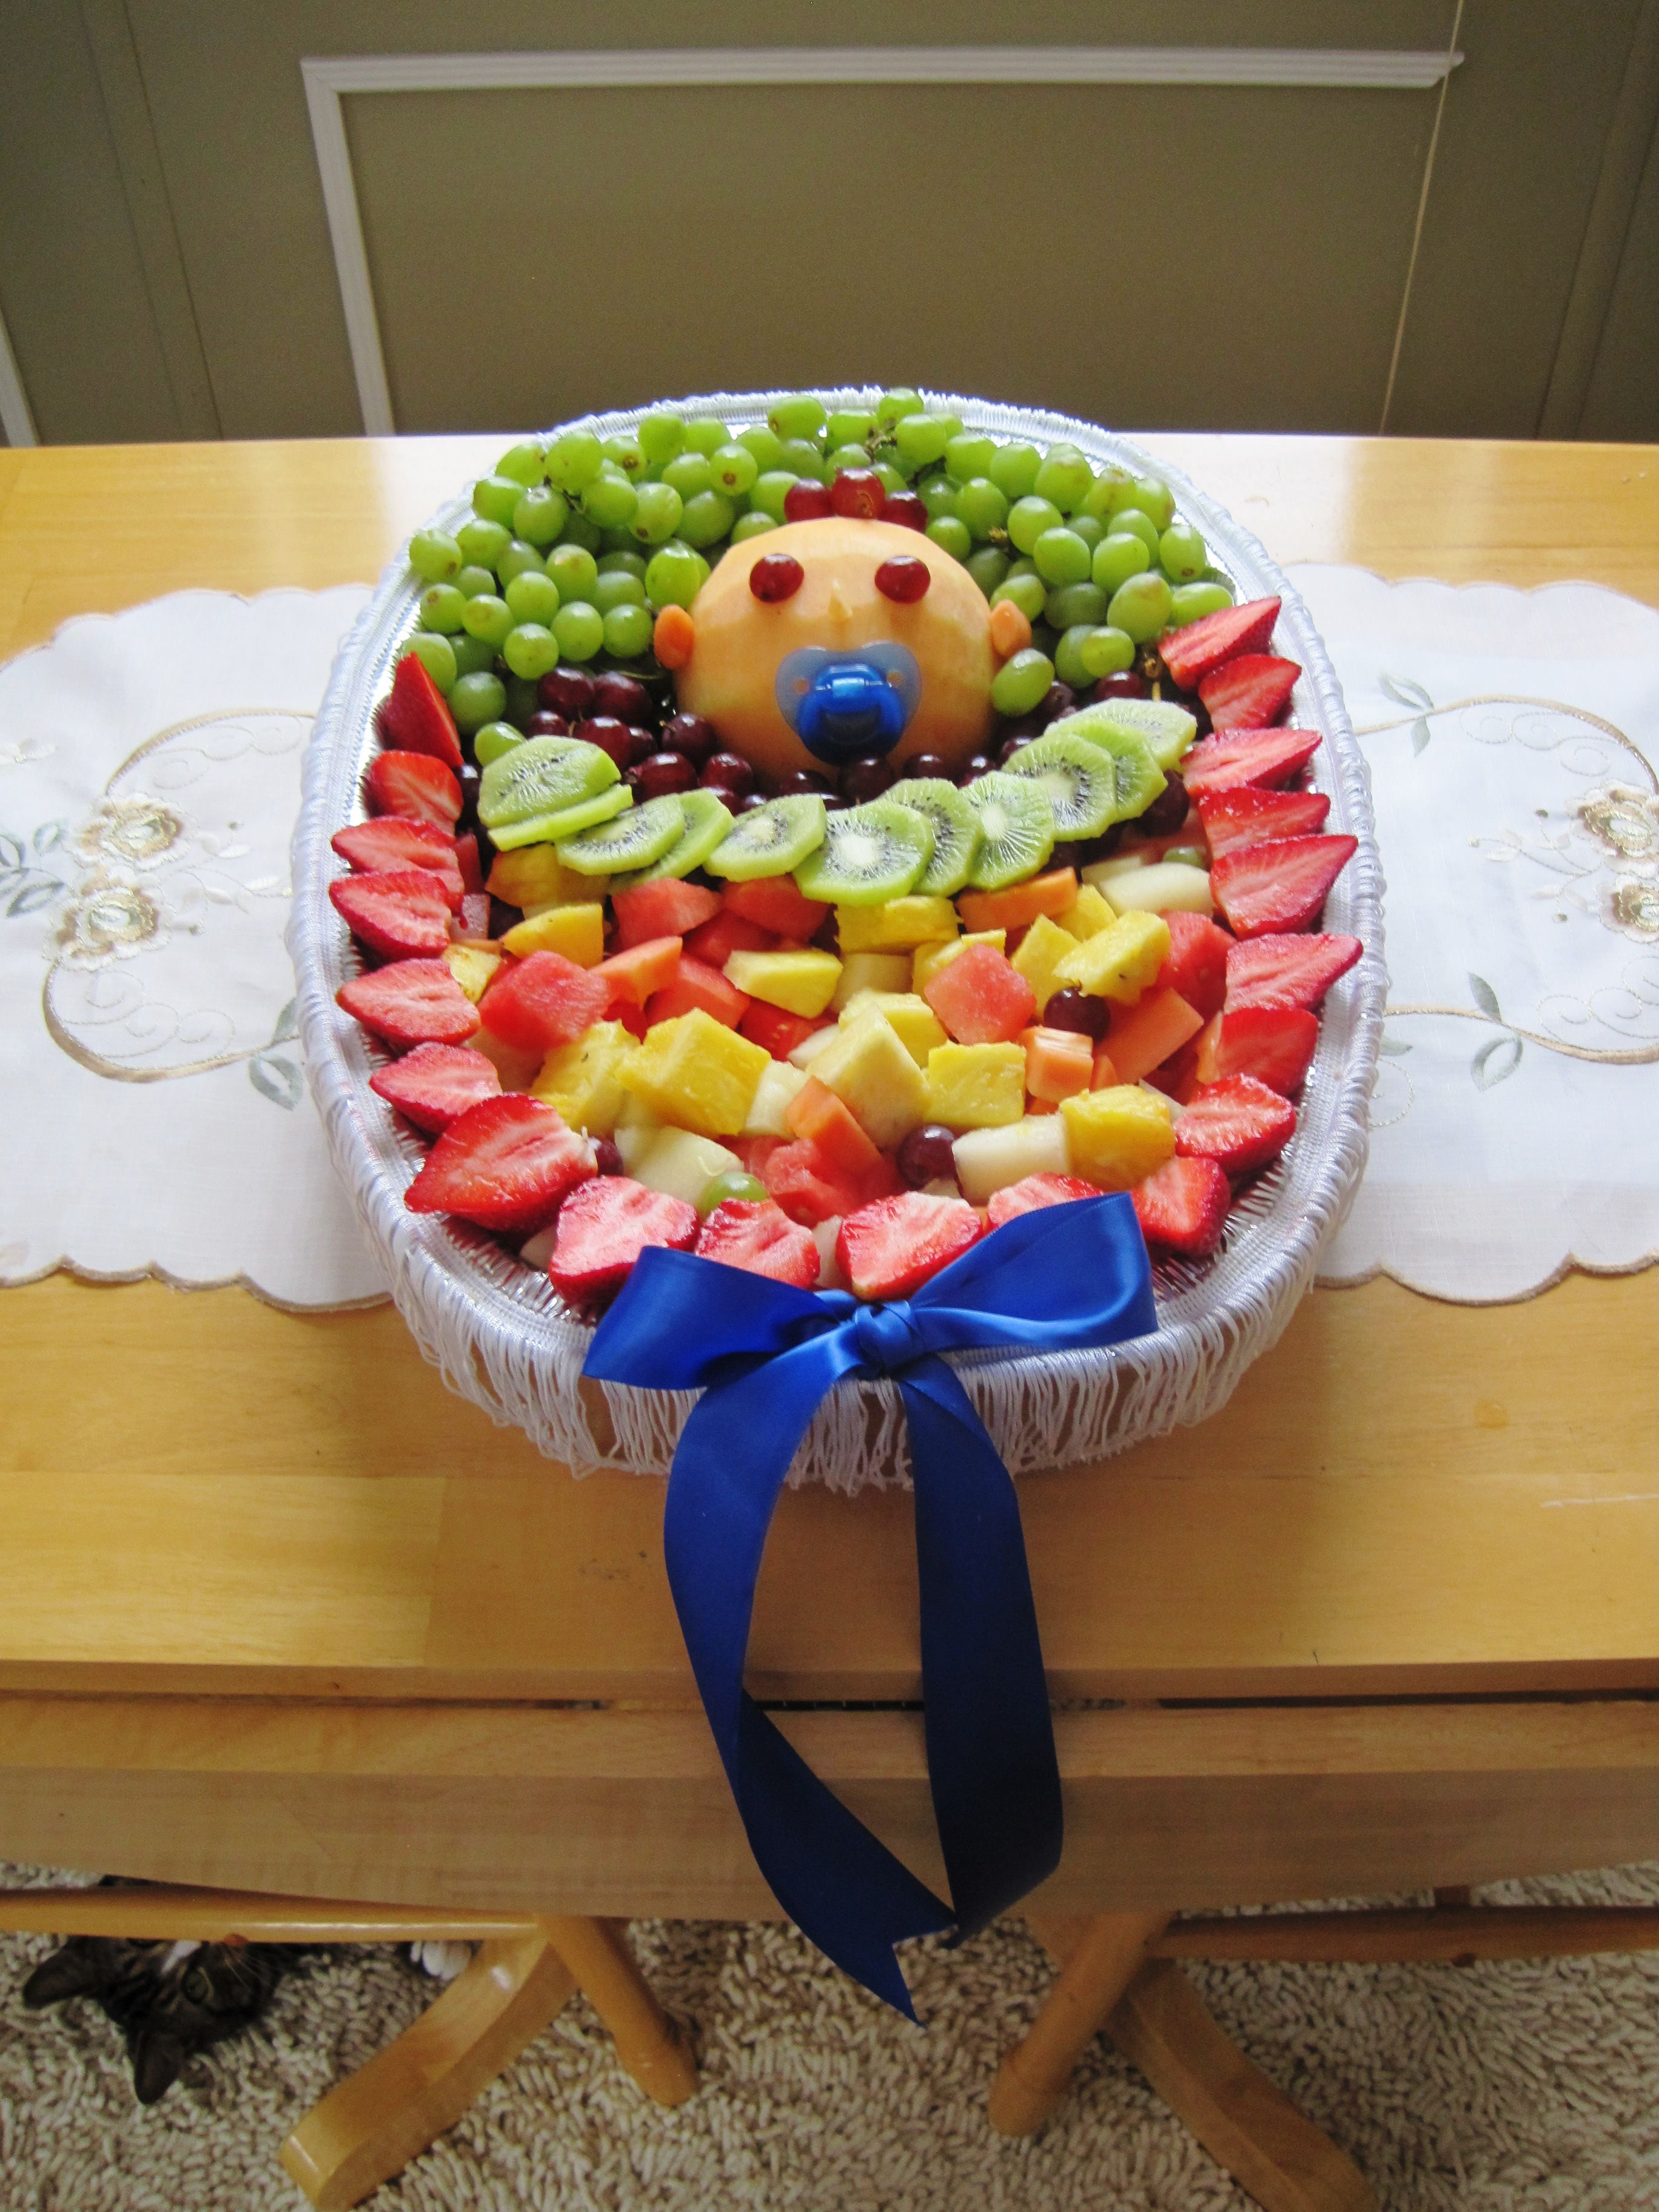 Fruit Tray Pictures Ideas | Easy Fruit Display Ideas - YouTube